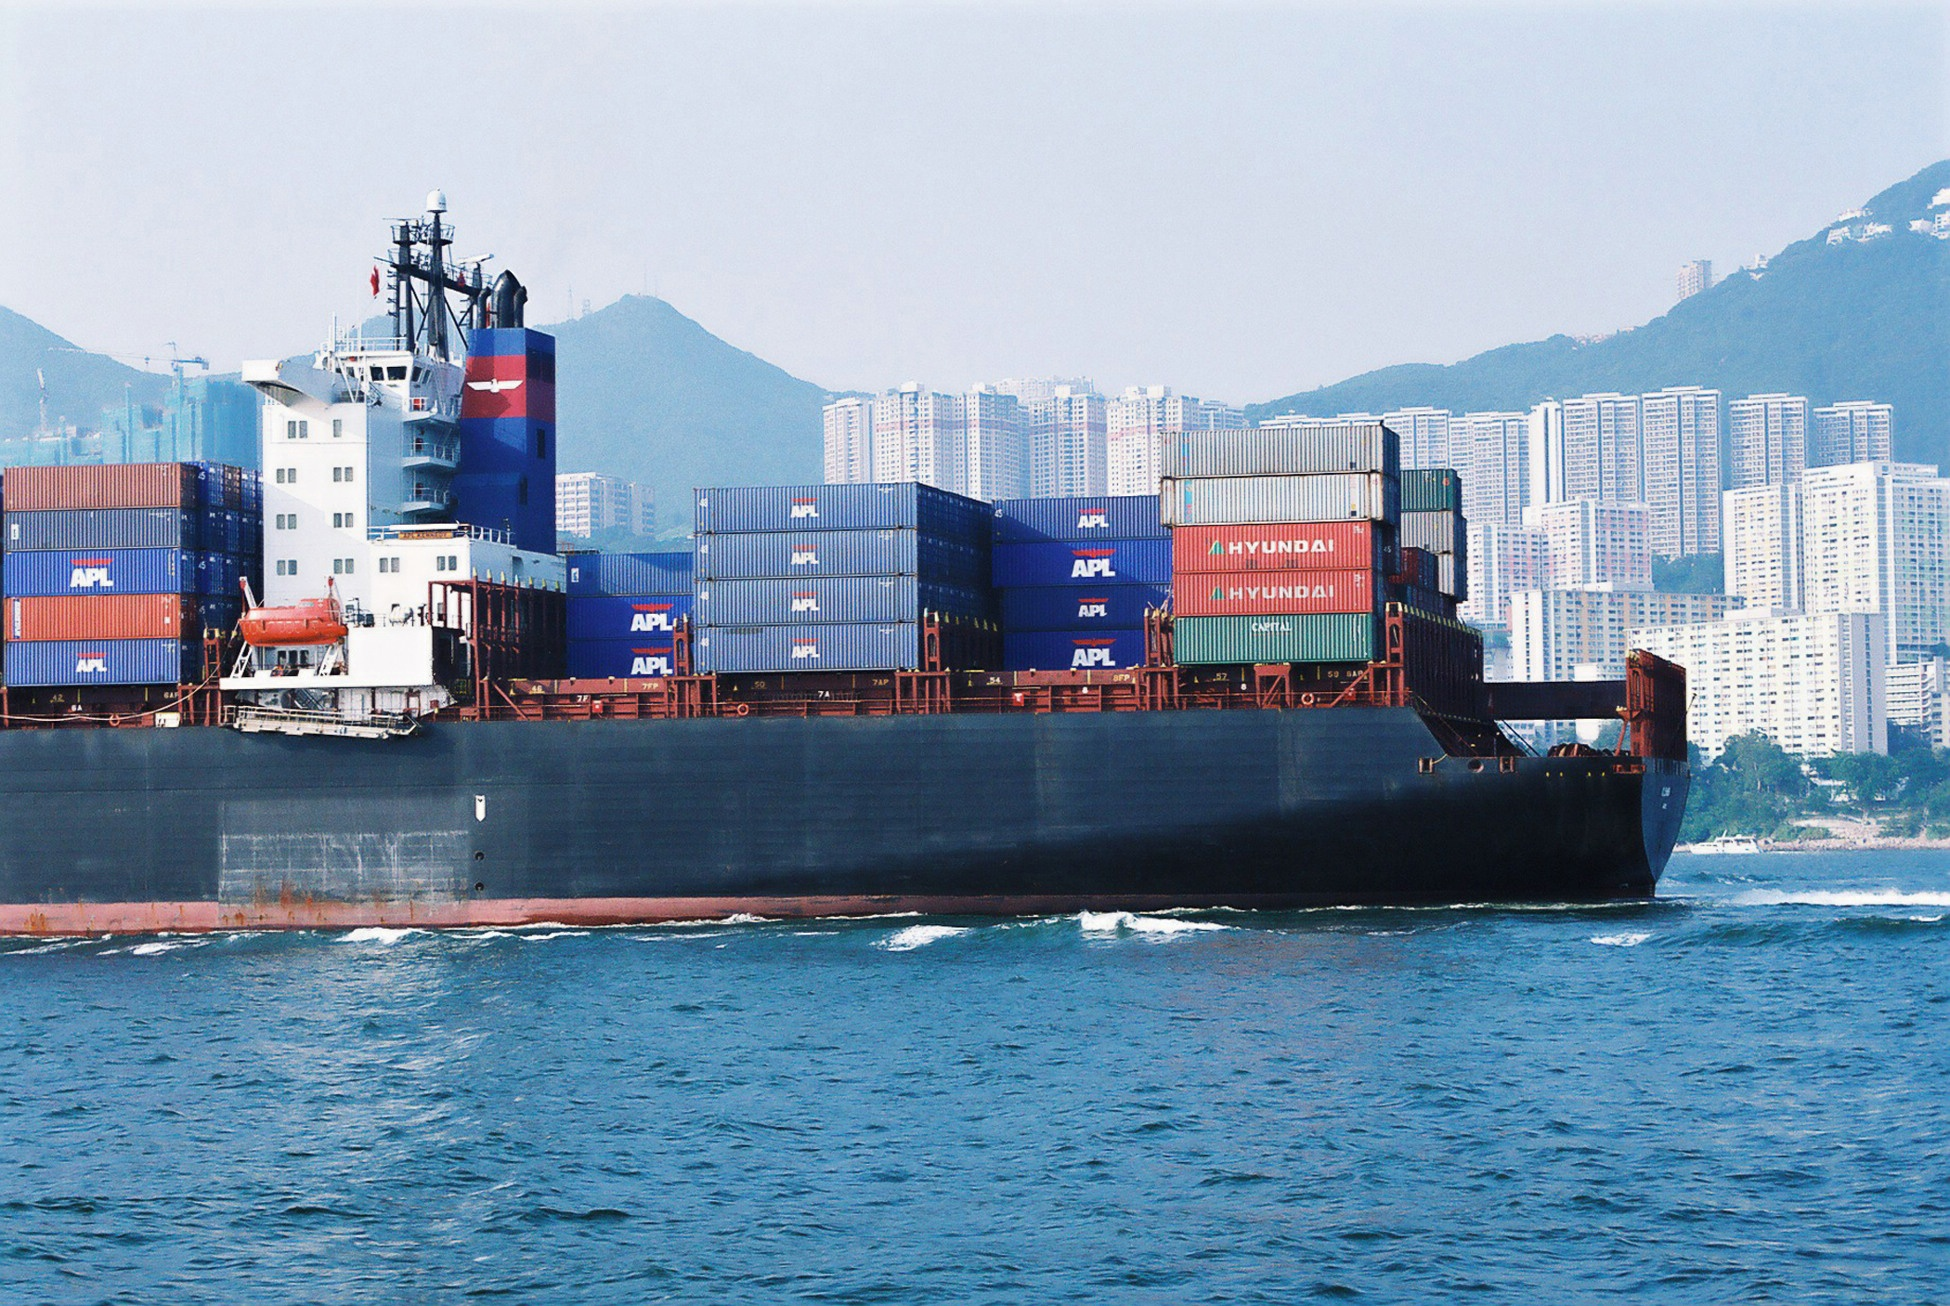 container-ship-in-hong-kong-1495556.jpg